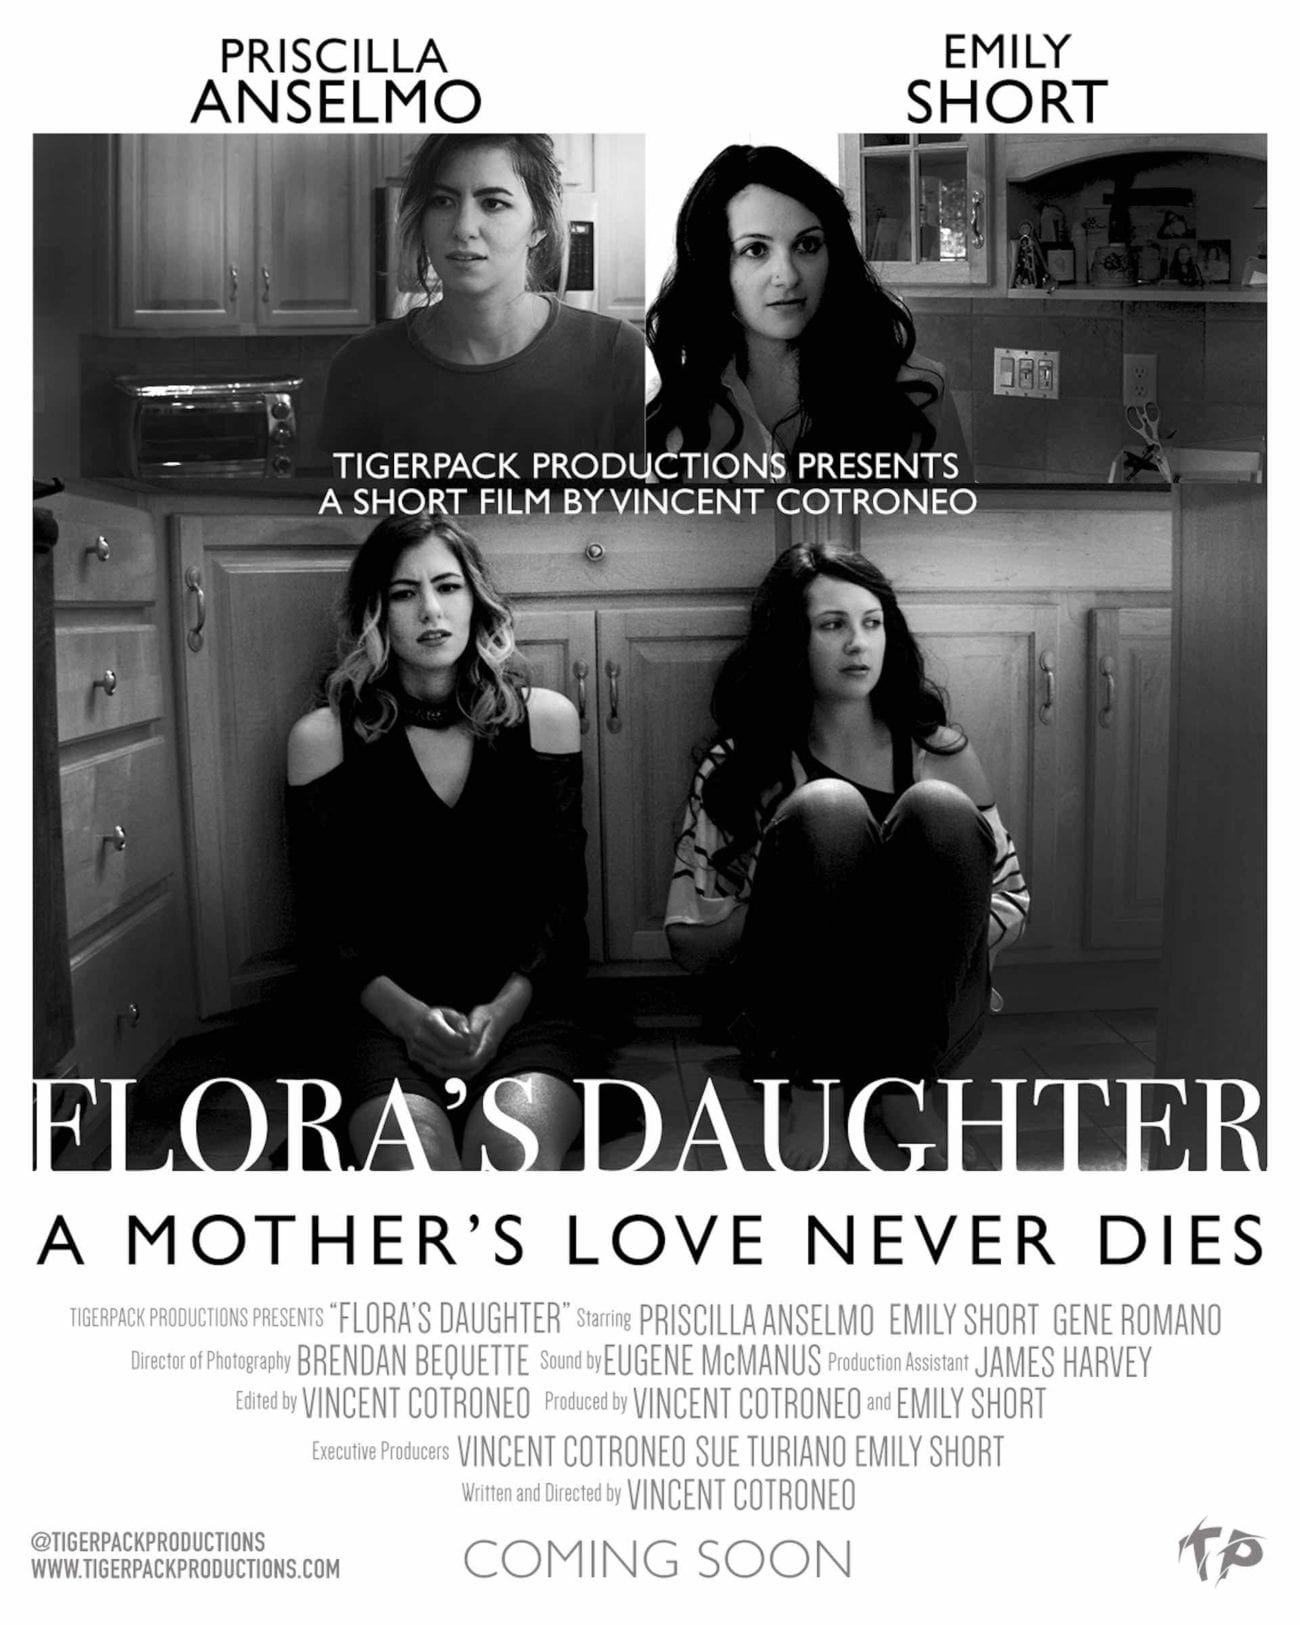 'Flora's Daughter' is the newest passion project of the young production company Tigerpack Productions. Here's what we know about the noir thriller.